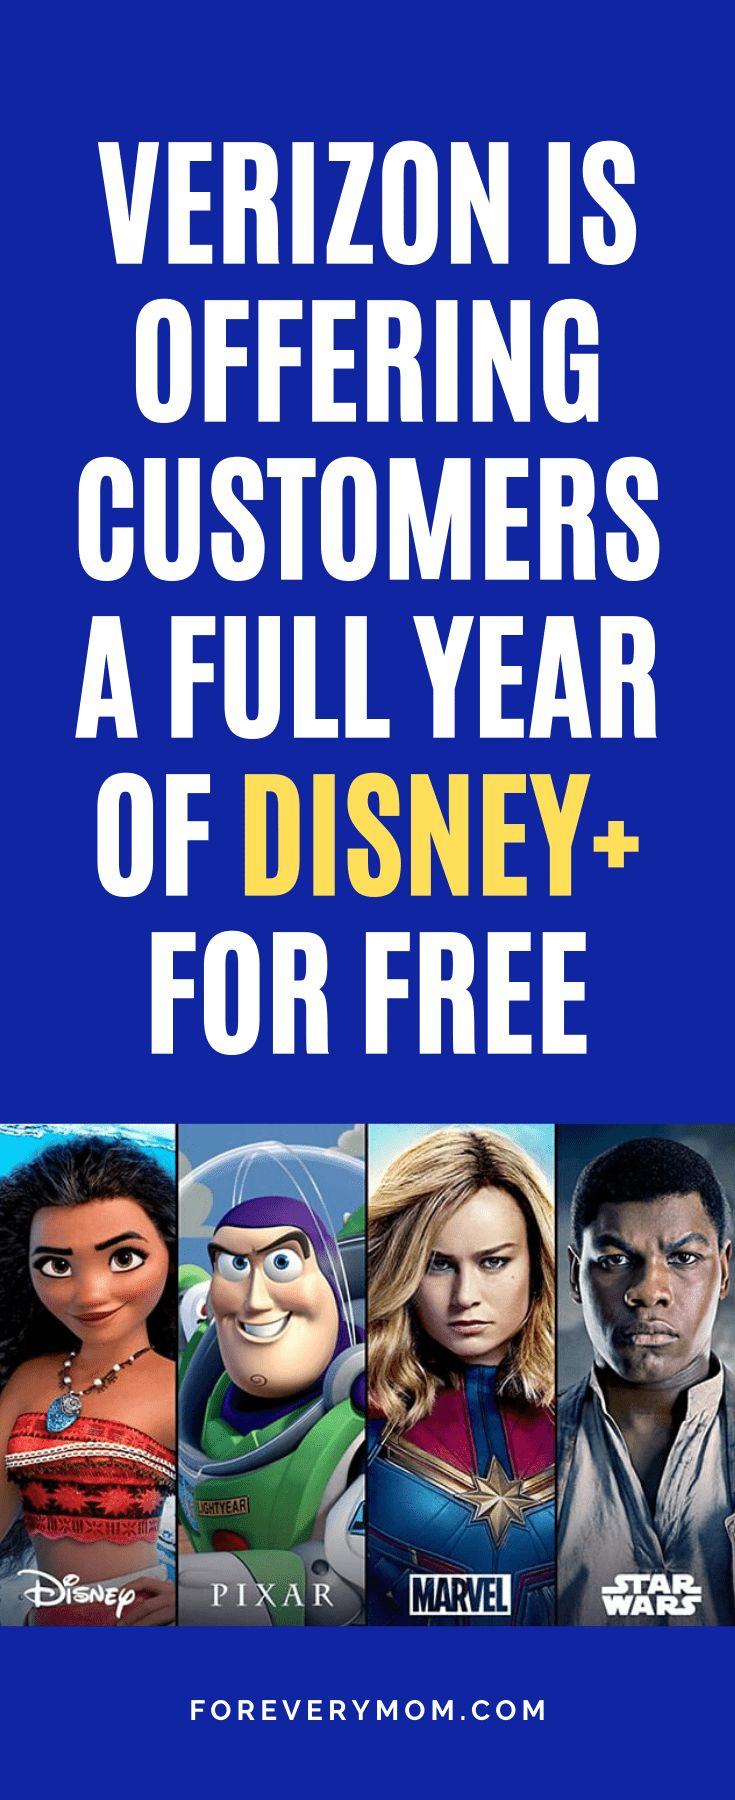 Verizon is Offering Customers a Full Year of Disney+ For